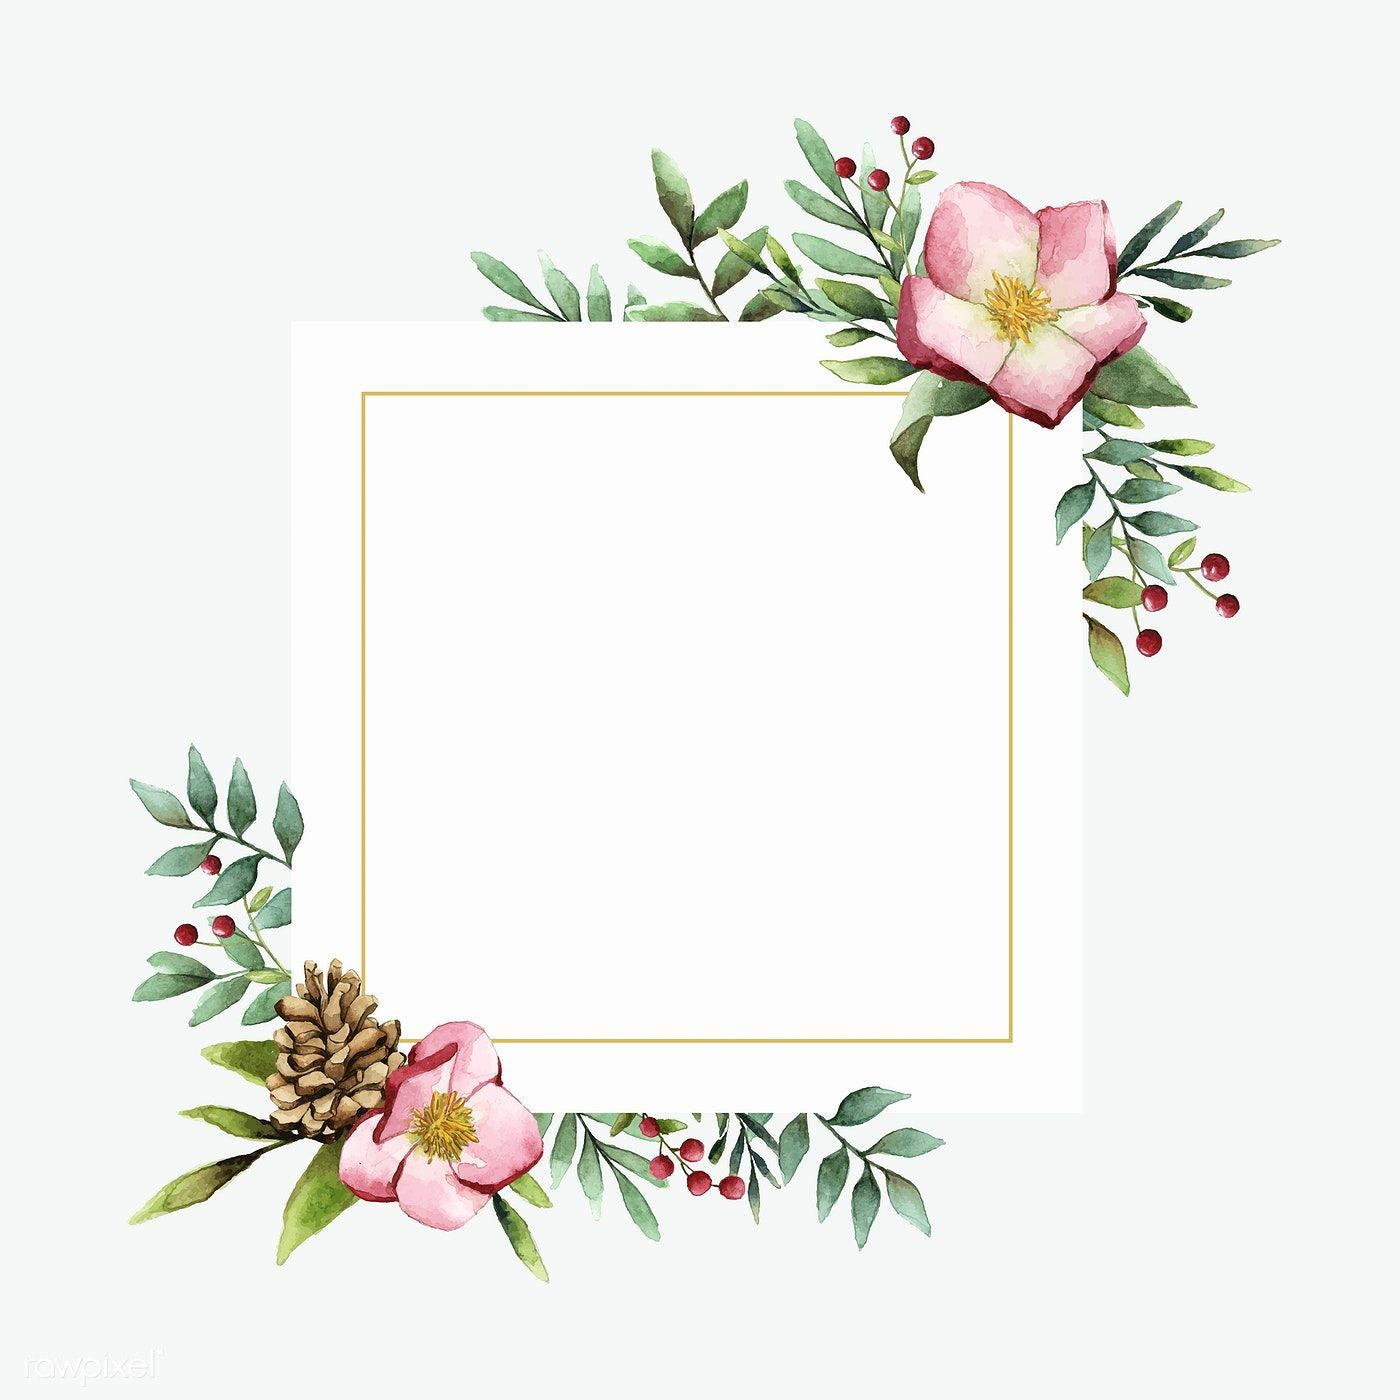 Download Premium Vector Of Hellebore Flower Frame Painted By Watercolor Flower Frame Painting Frames Vector Flowers